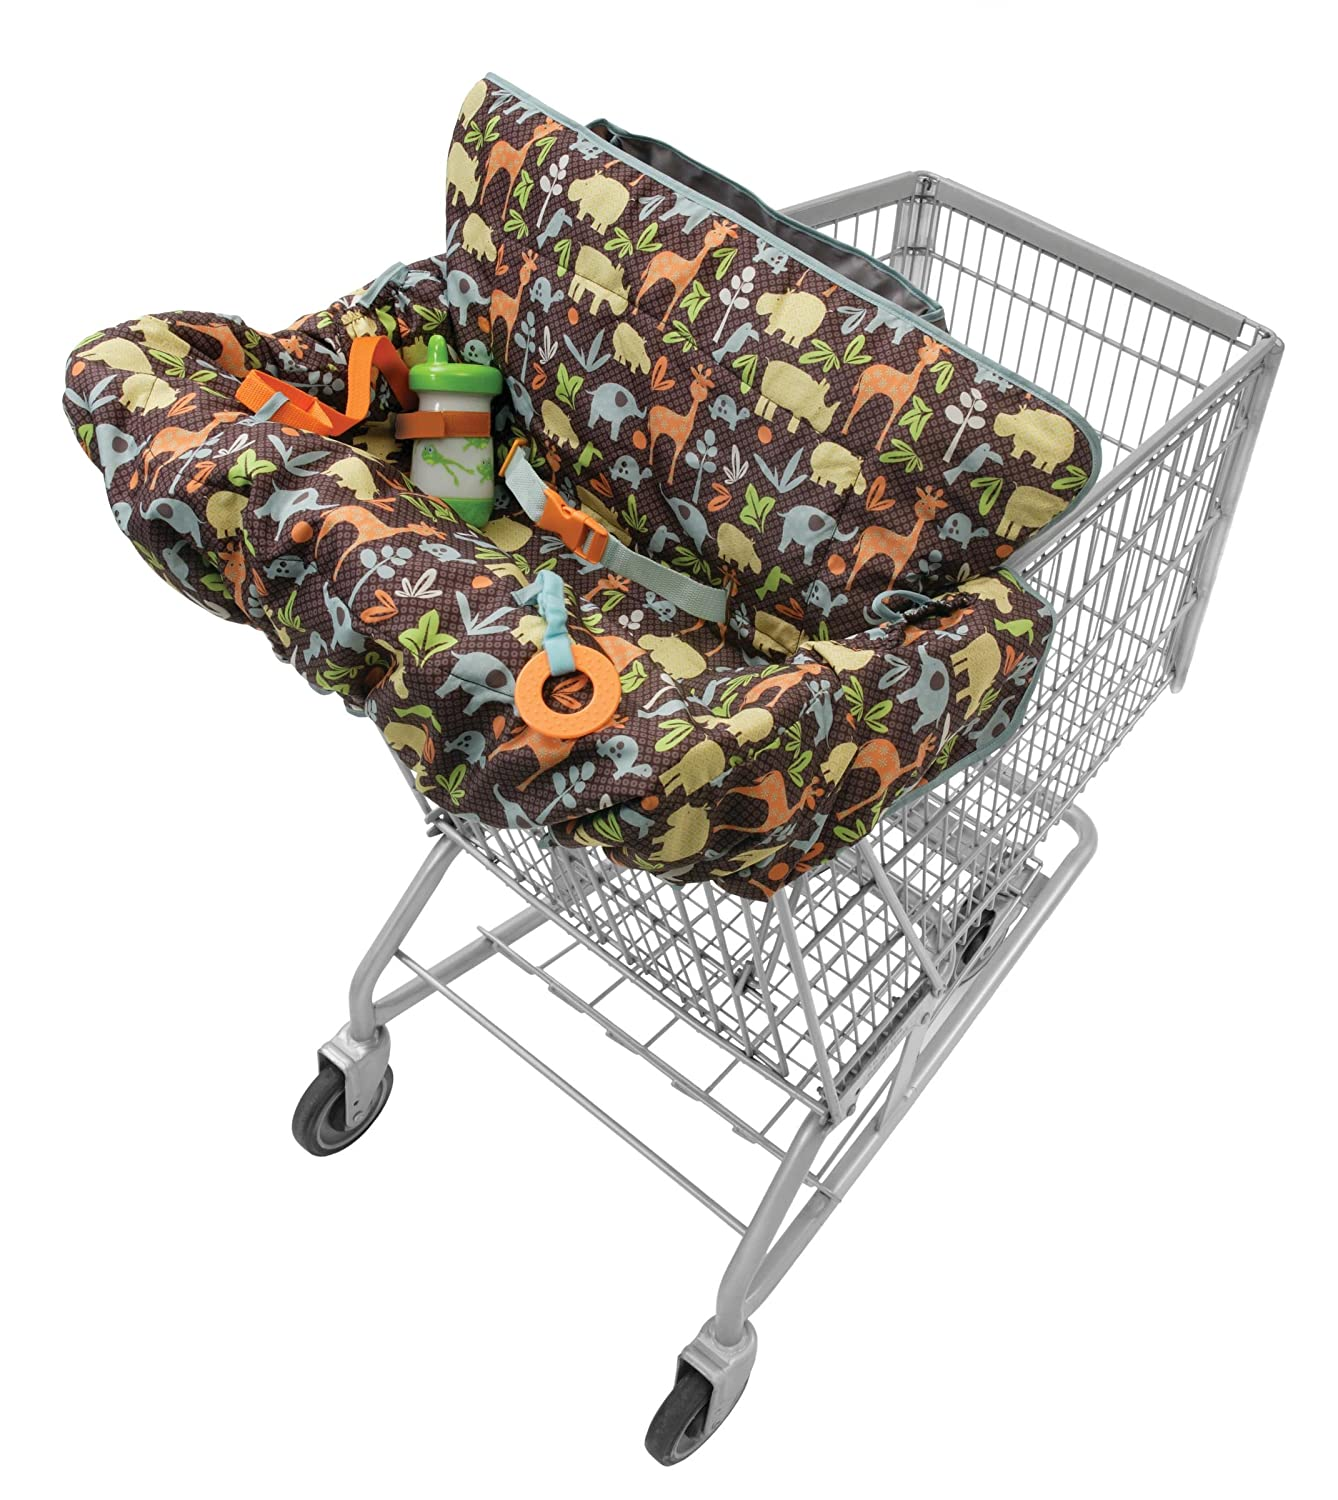 Infantino Compact 2-in-1 Shopping Cart Cover, Neutral : Baby Shopping Cart Covers : Baby